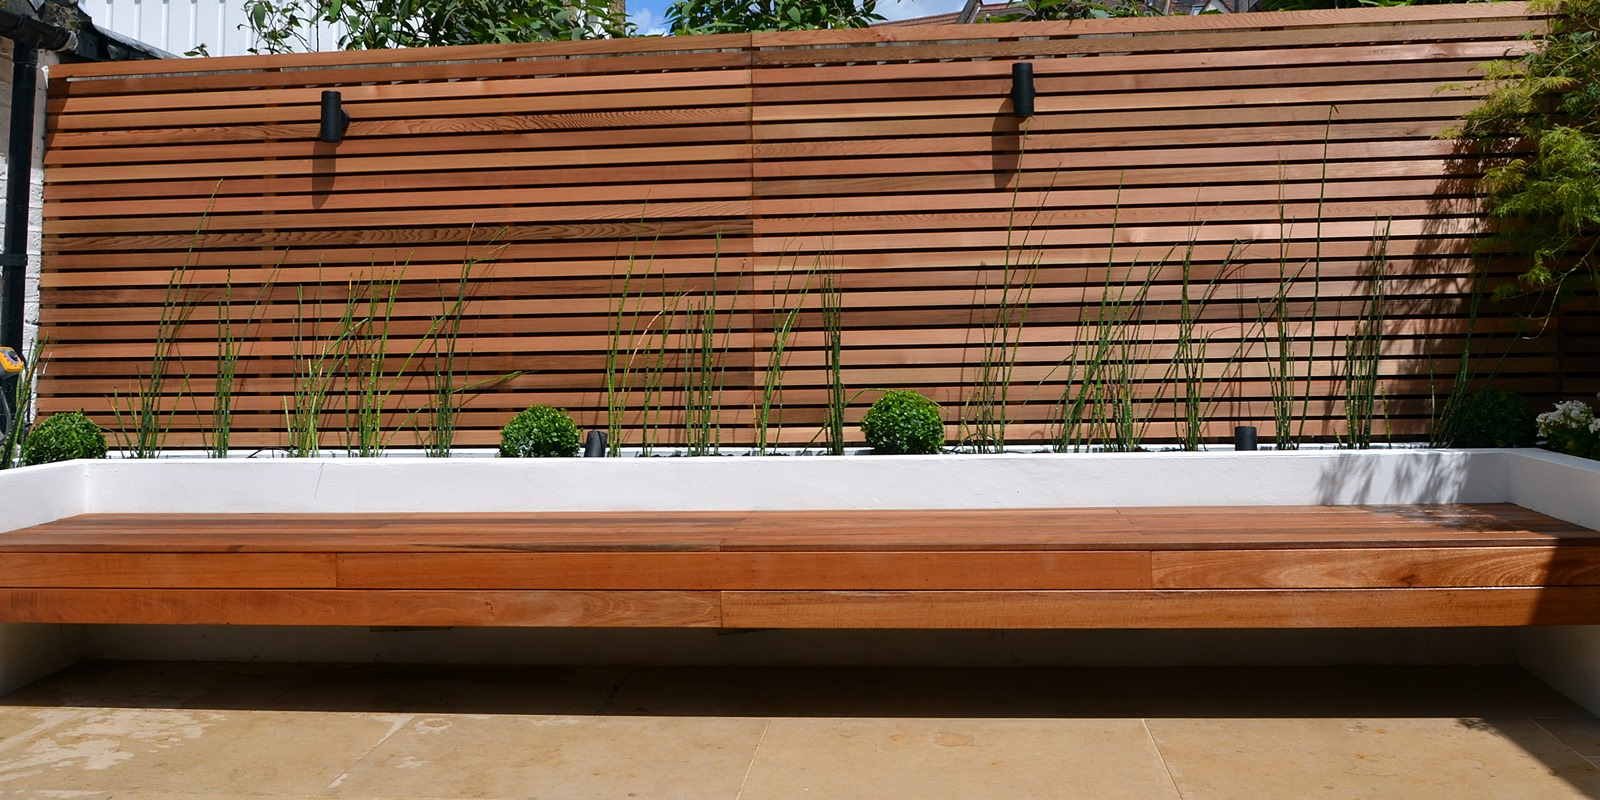 cedar screen raised planter bed limestone paving hardwood bench clapham london (1)